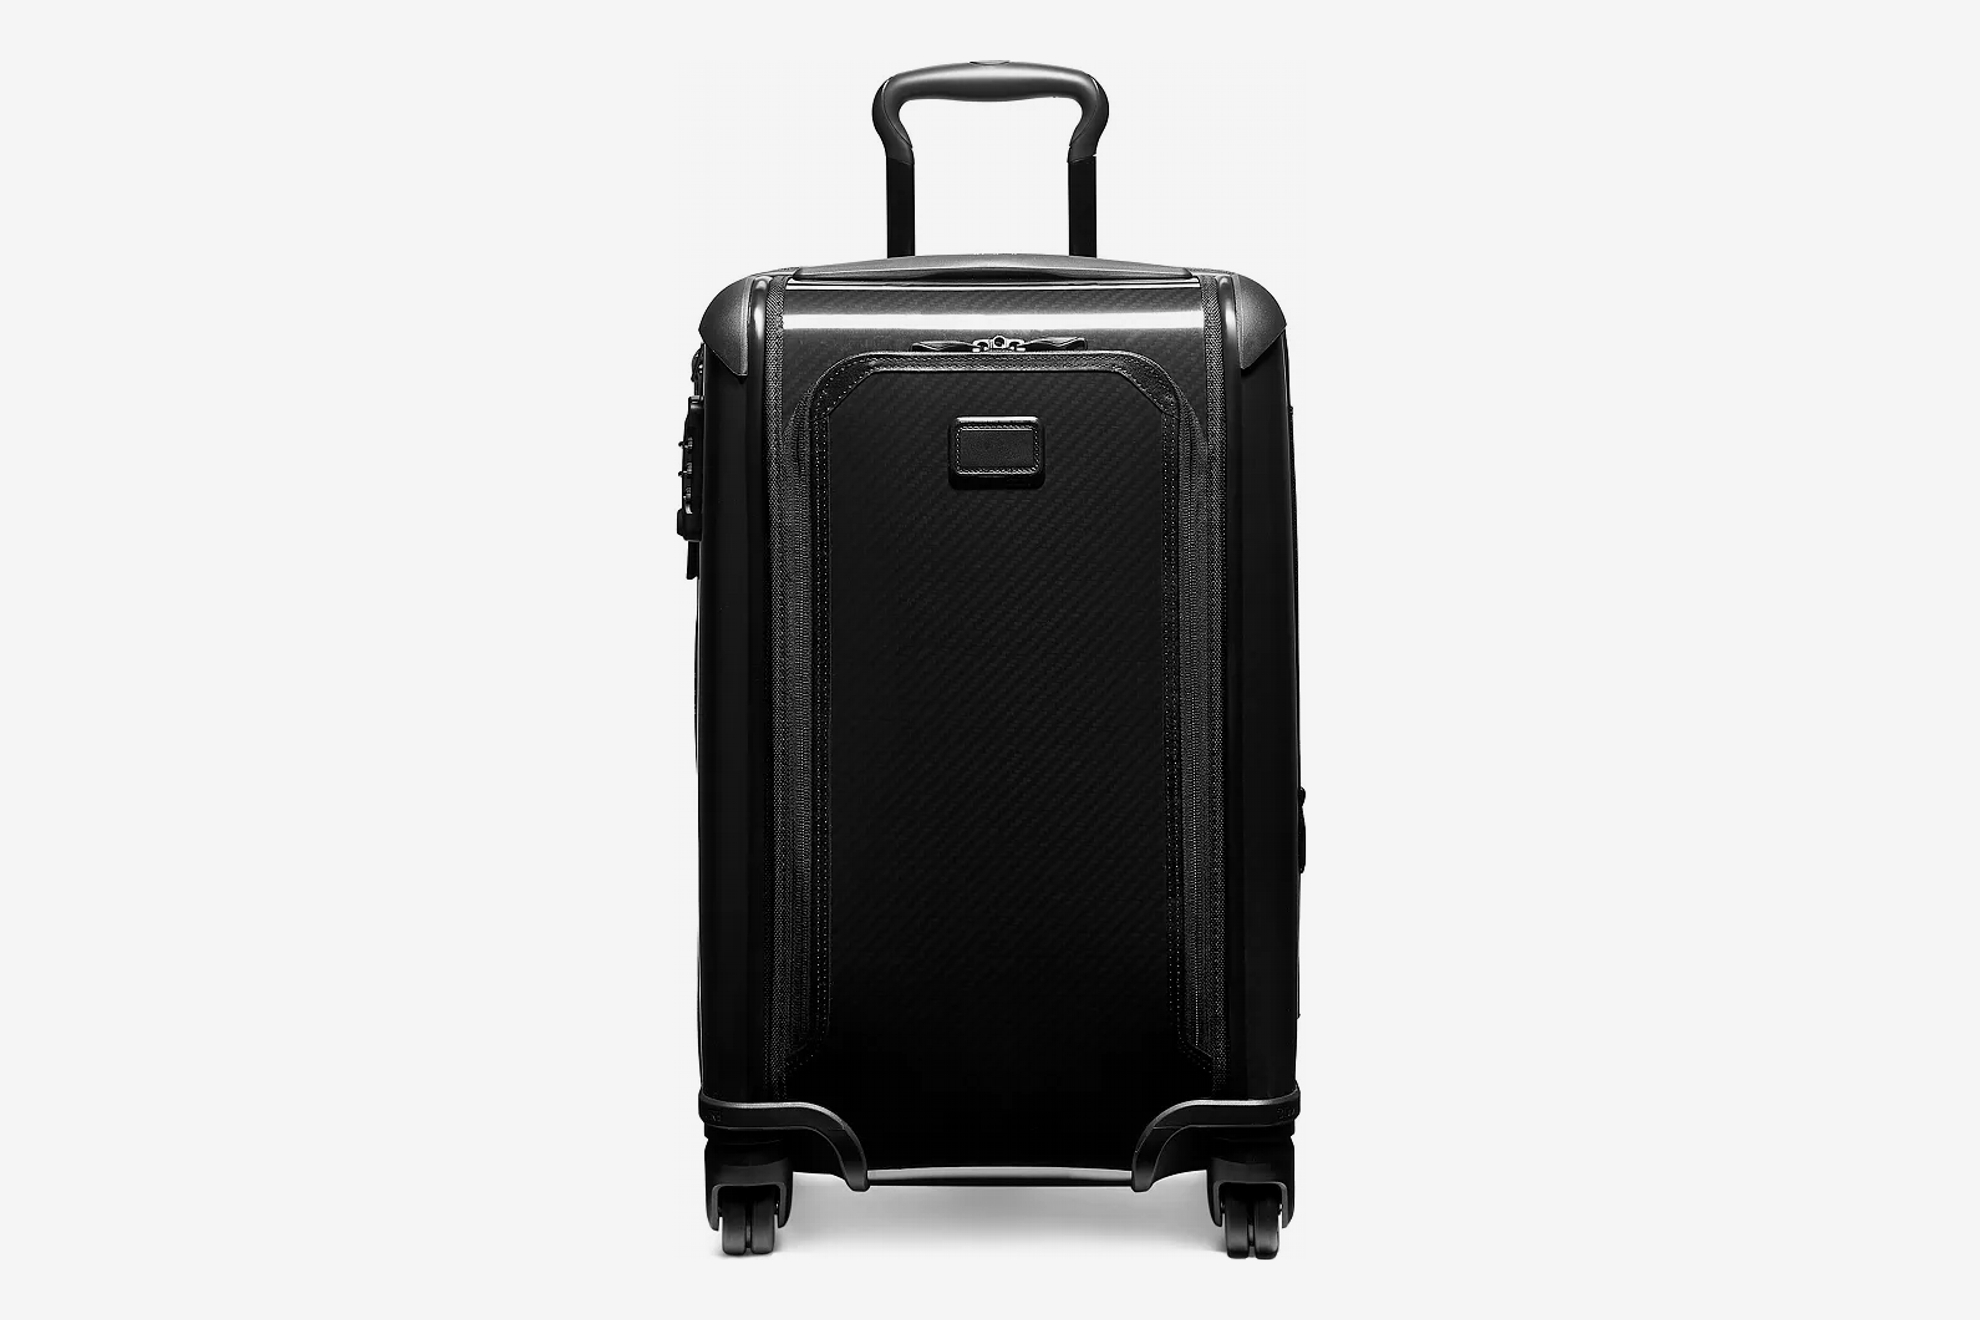 Tumi Tegra-Lite Max International 22-Inch Expandable Carry-On